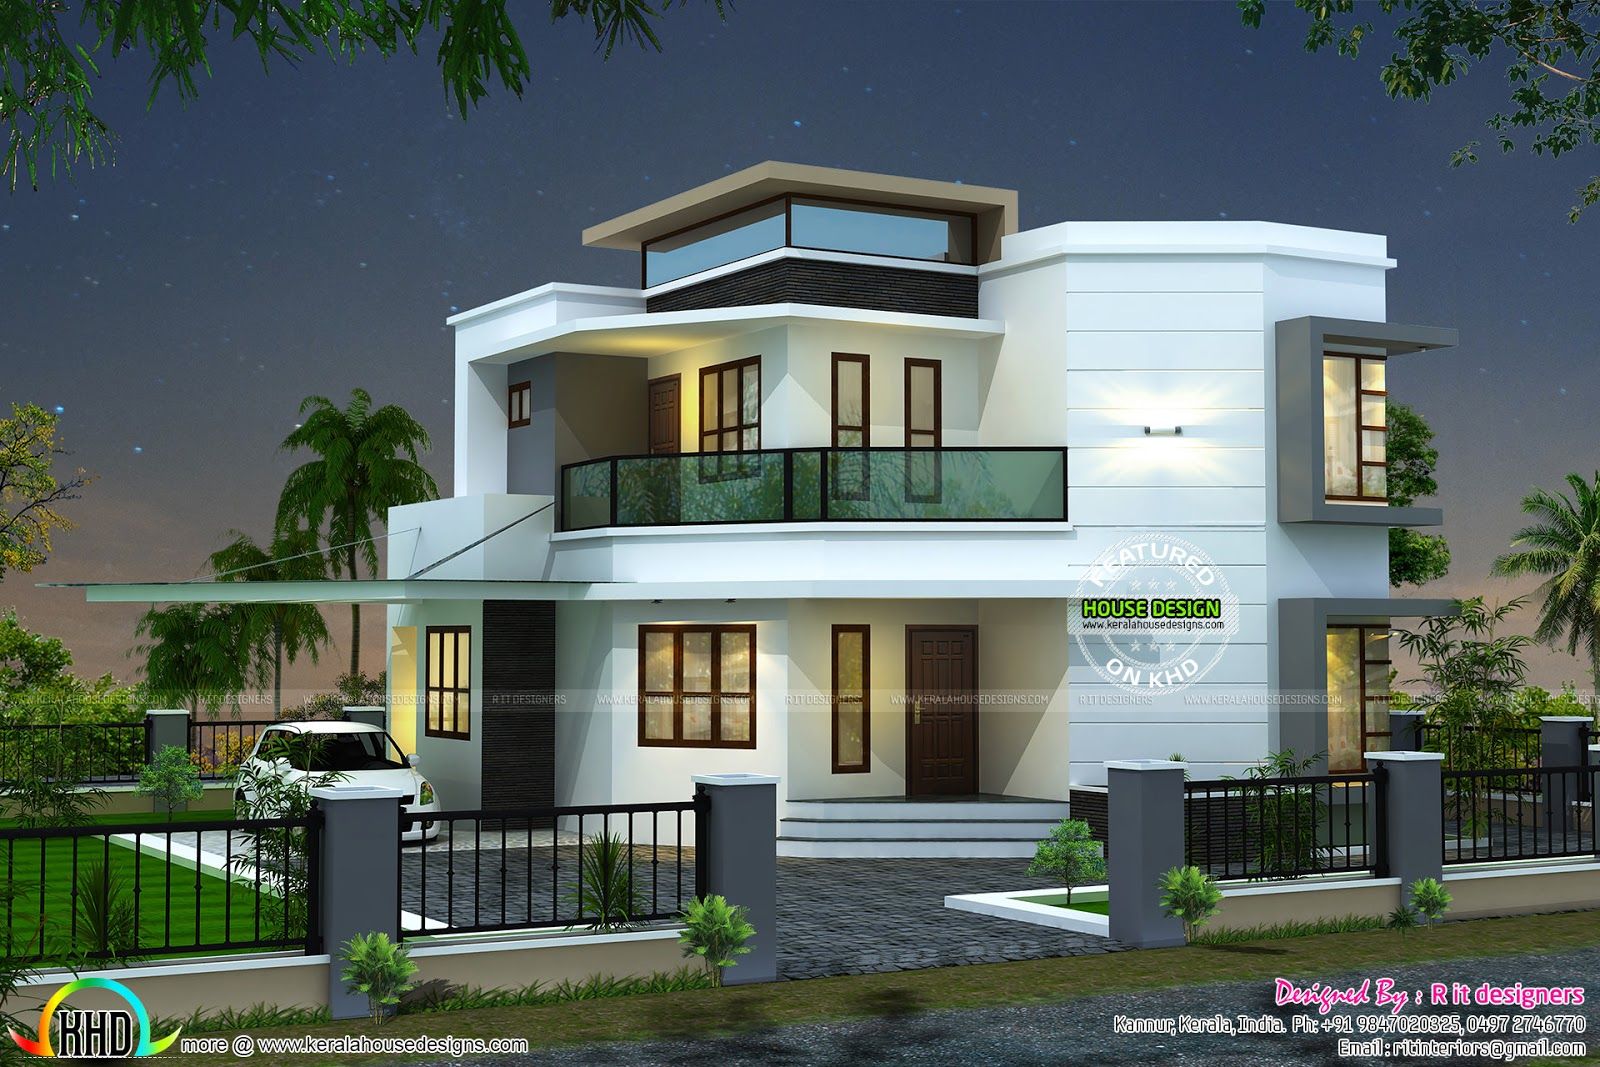 1838 sq ft cute modern house kerala home design and floor plans - New house design ...